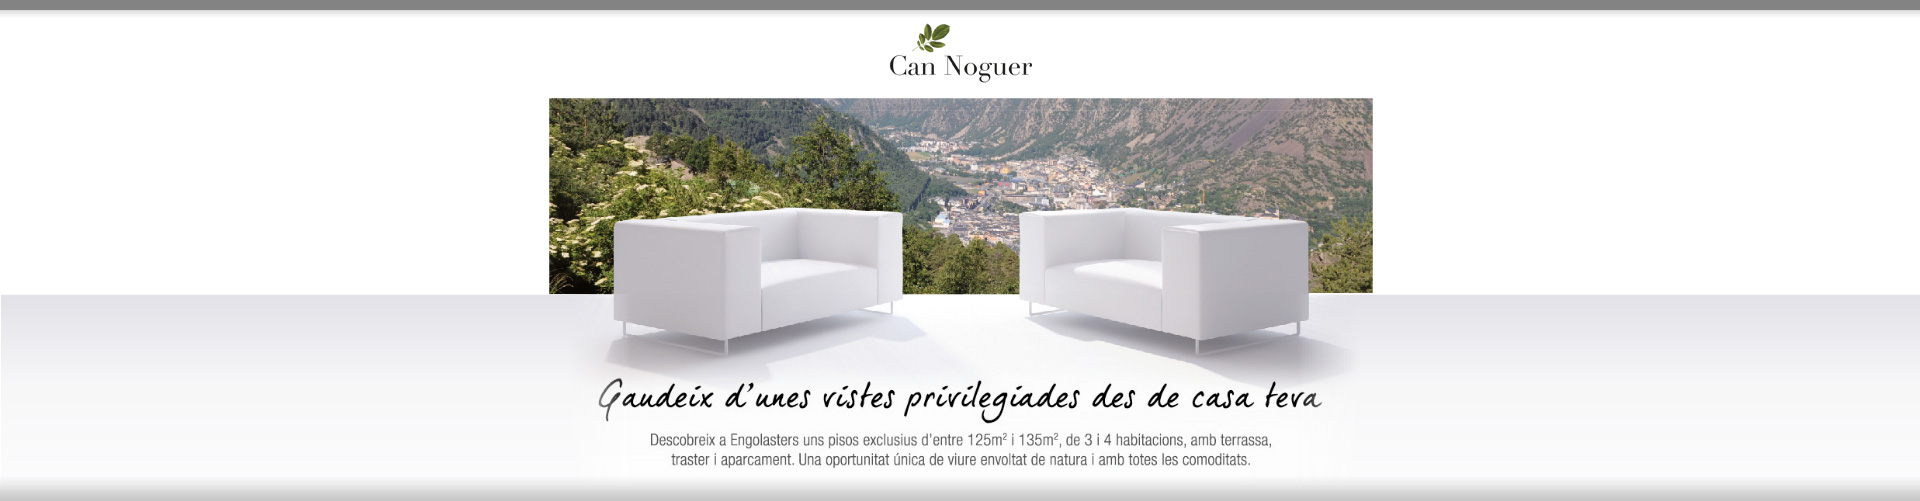 img_promo_can_noguer_2b